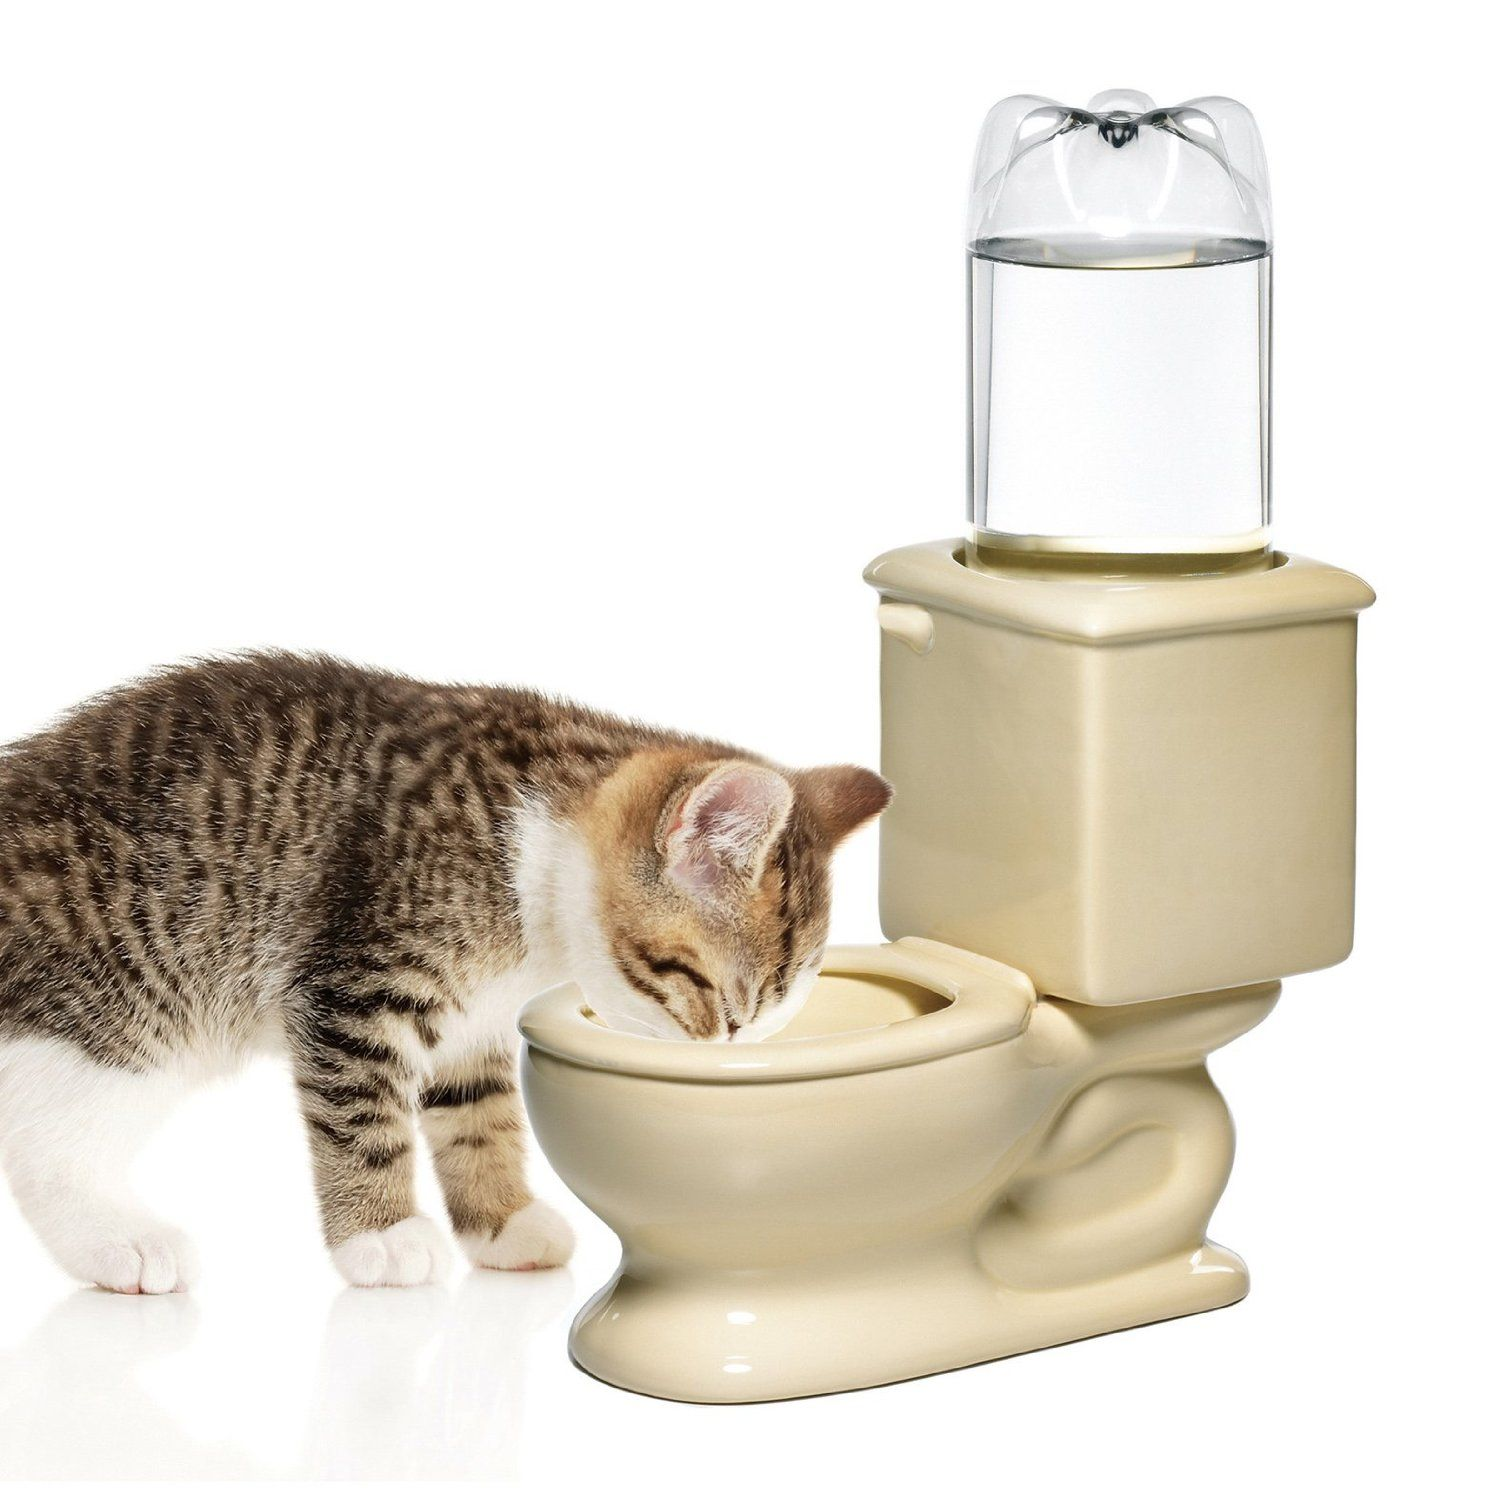 [Feline 101] Kitty Holiday Guide: Cool Gifts for Cats and Cat Lovers | Toilet Bowl Cat Fountain ($30)